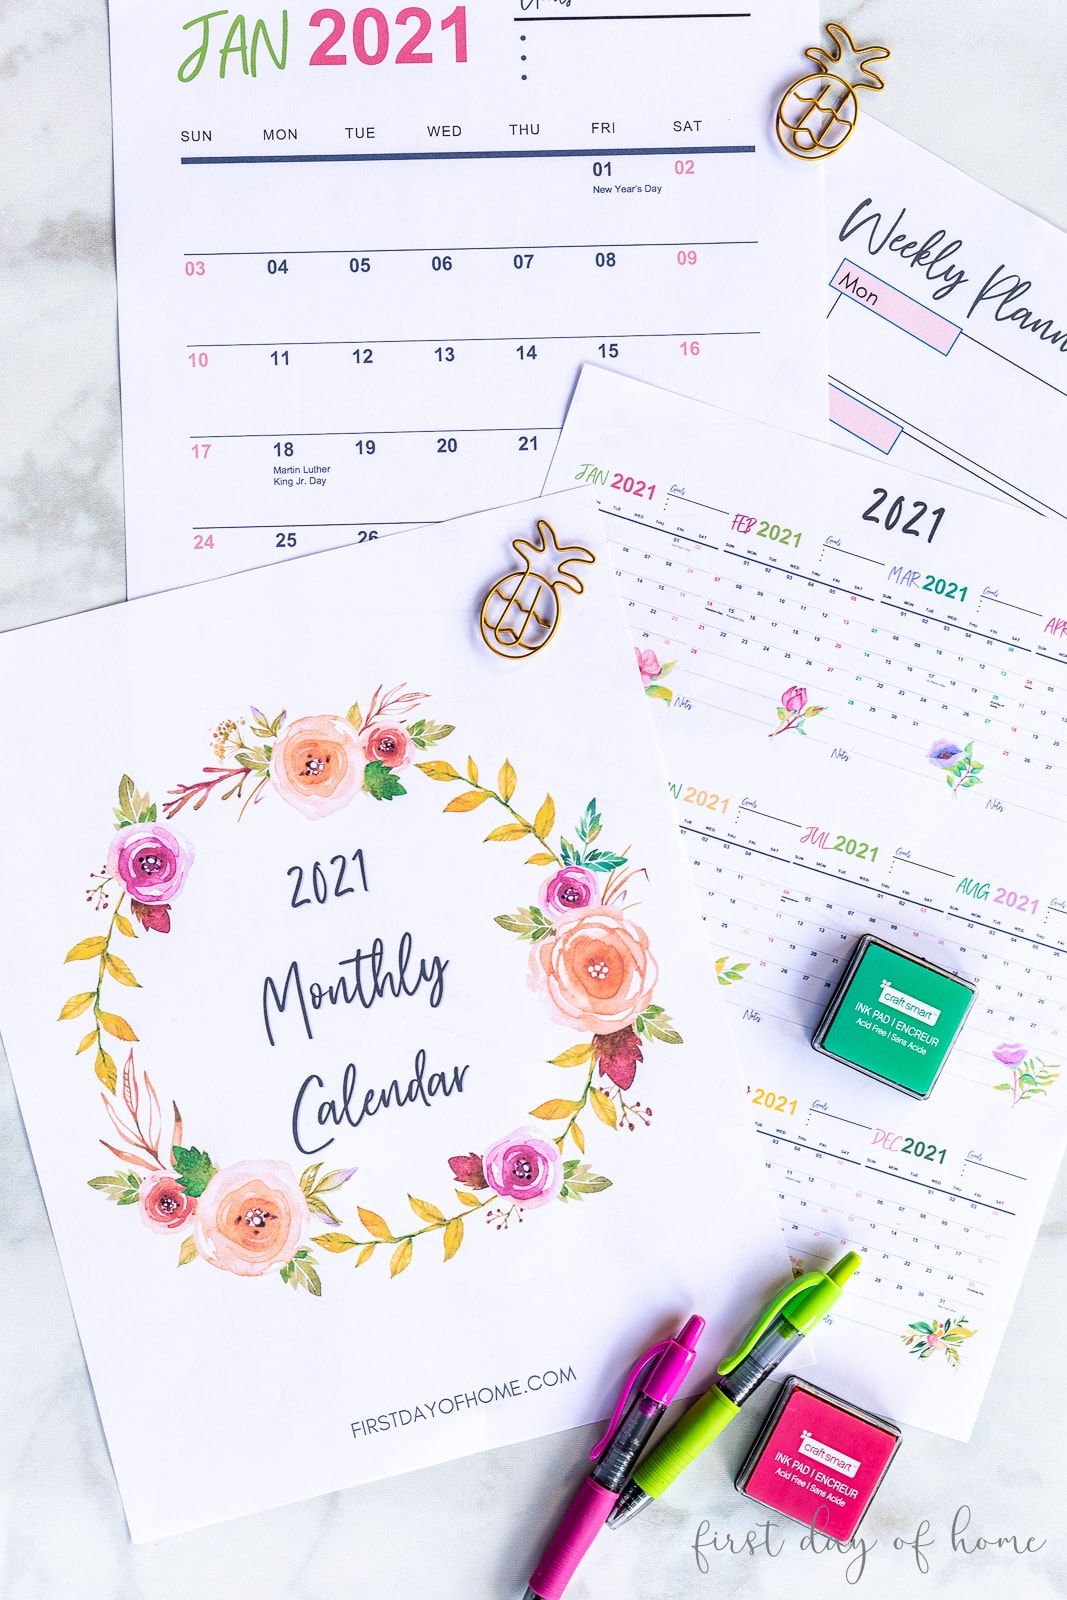 2021 calendar printable pages including year-at-a-glance, monthly calendar, weekly planner and notes pages